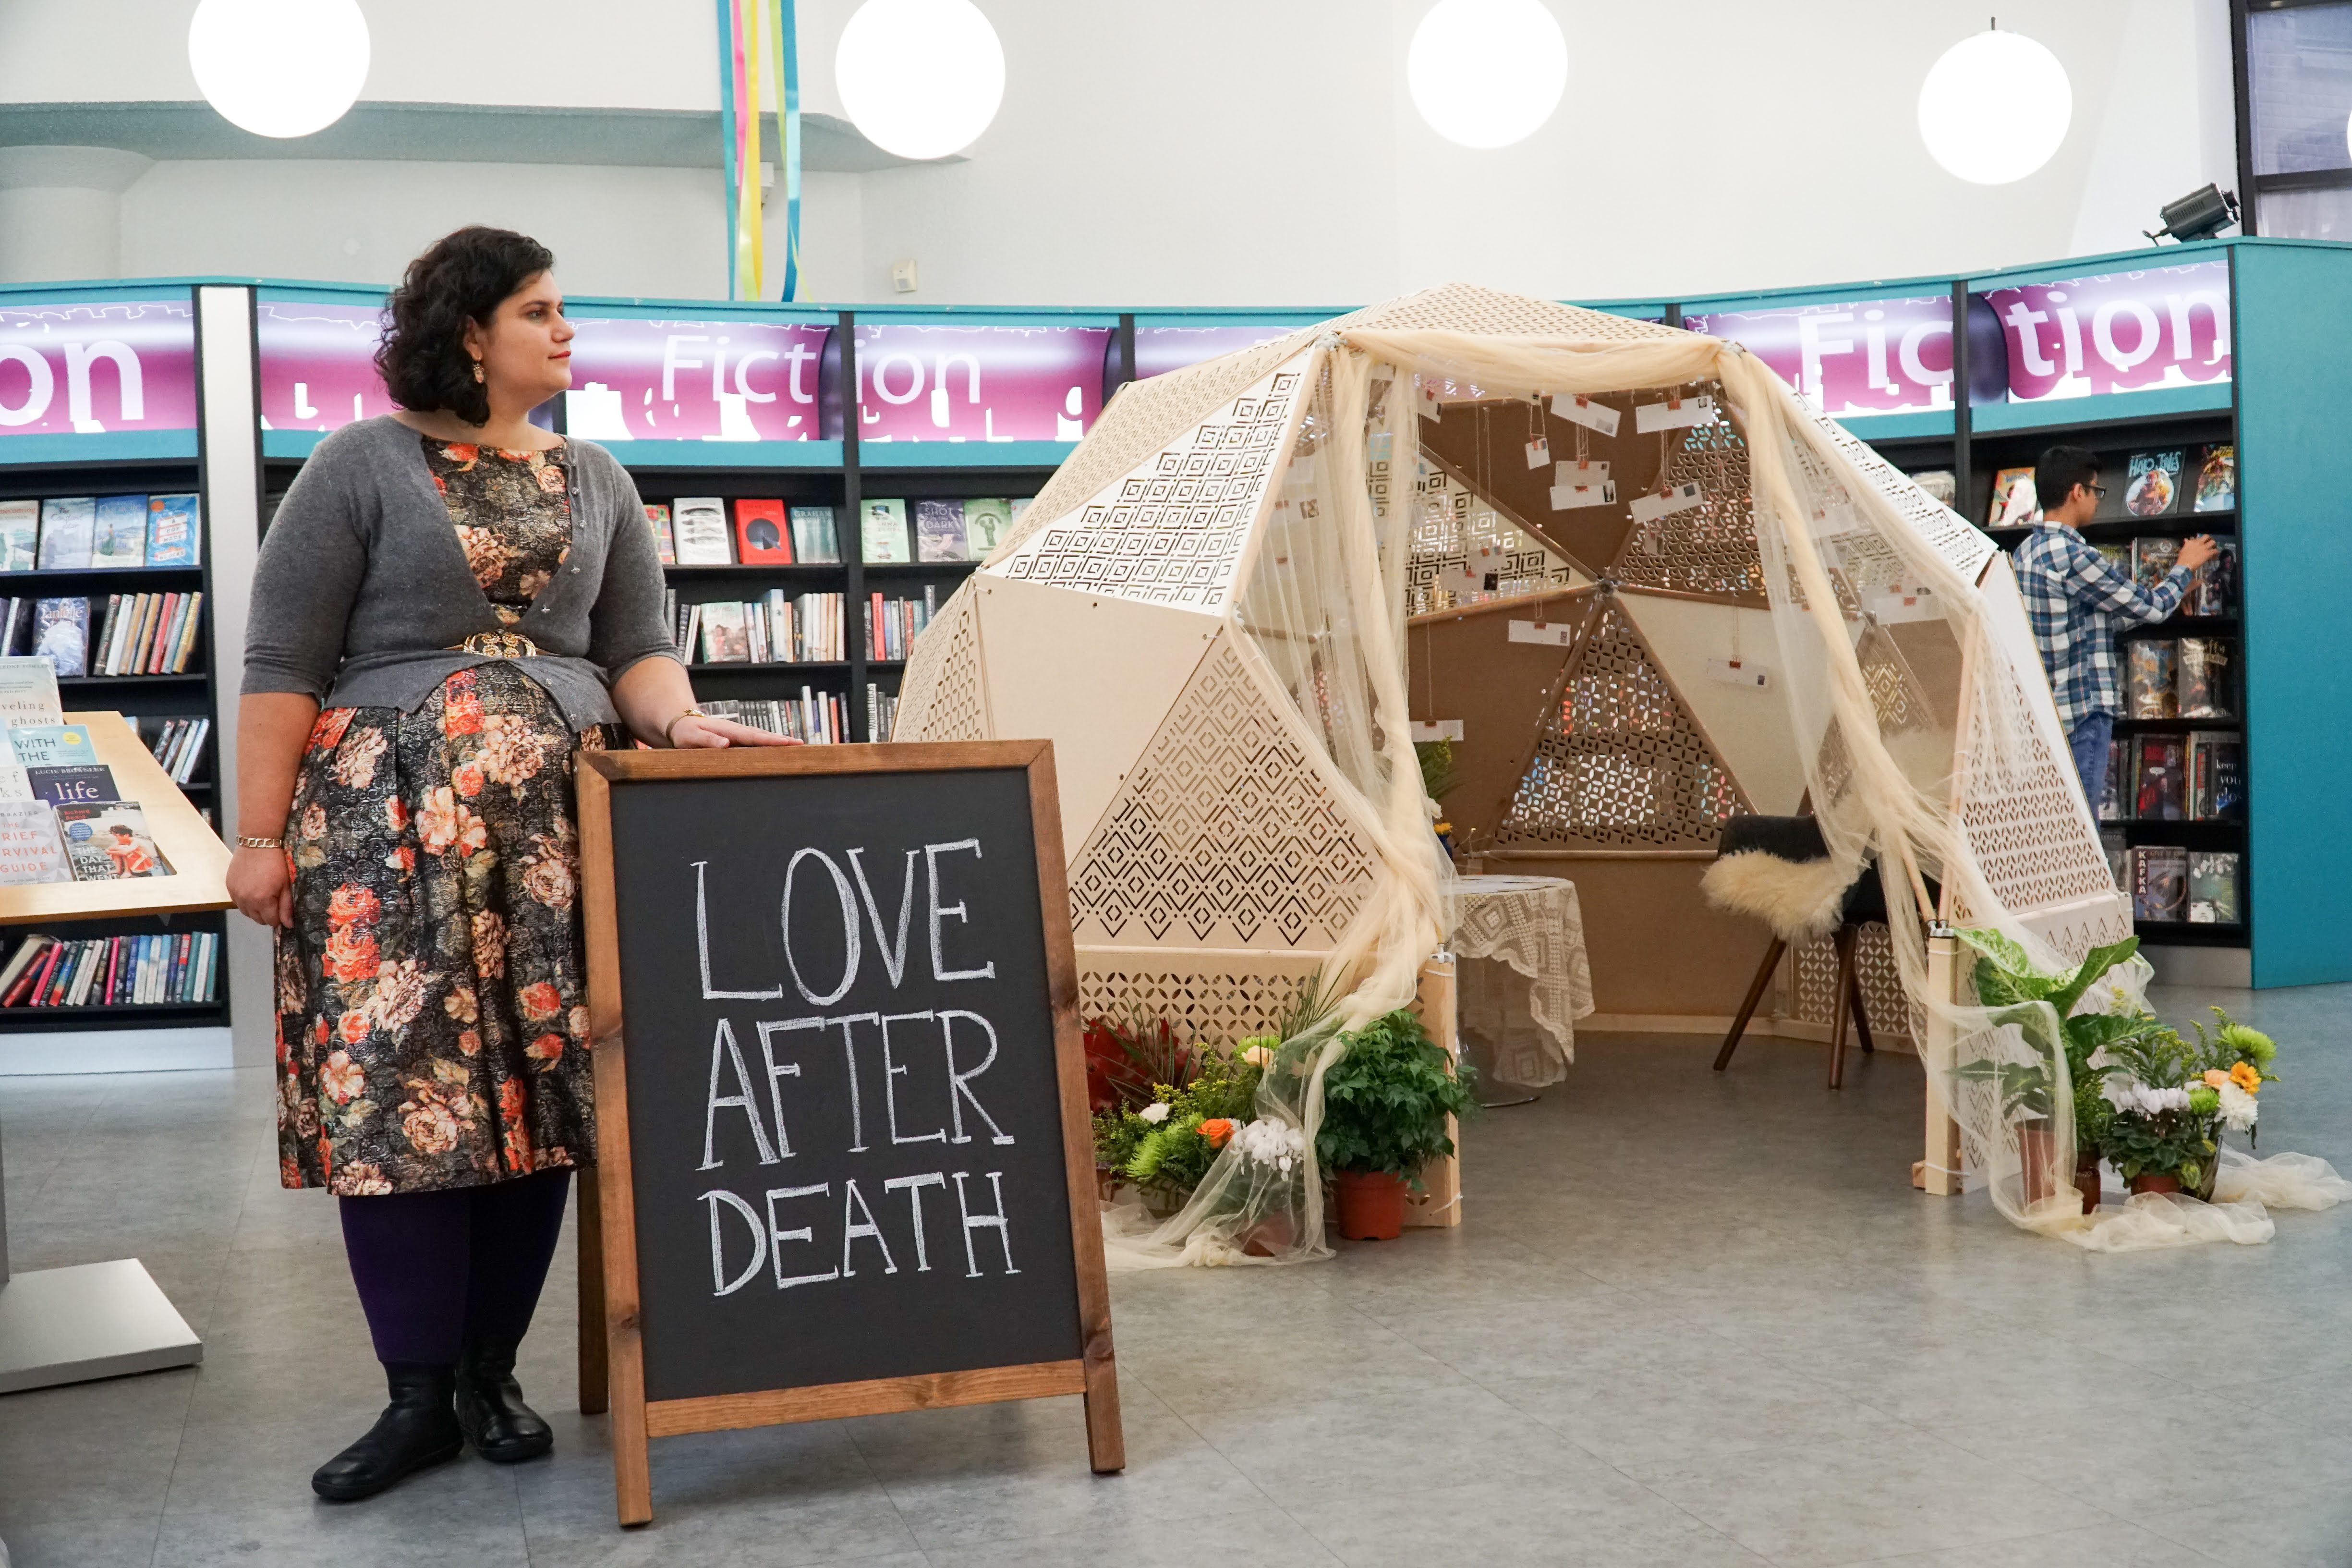 Woman next to chalkboard that says love after death